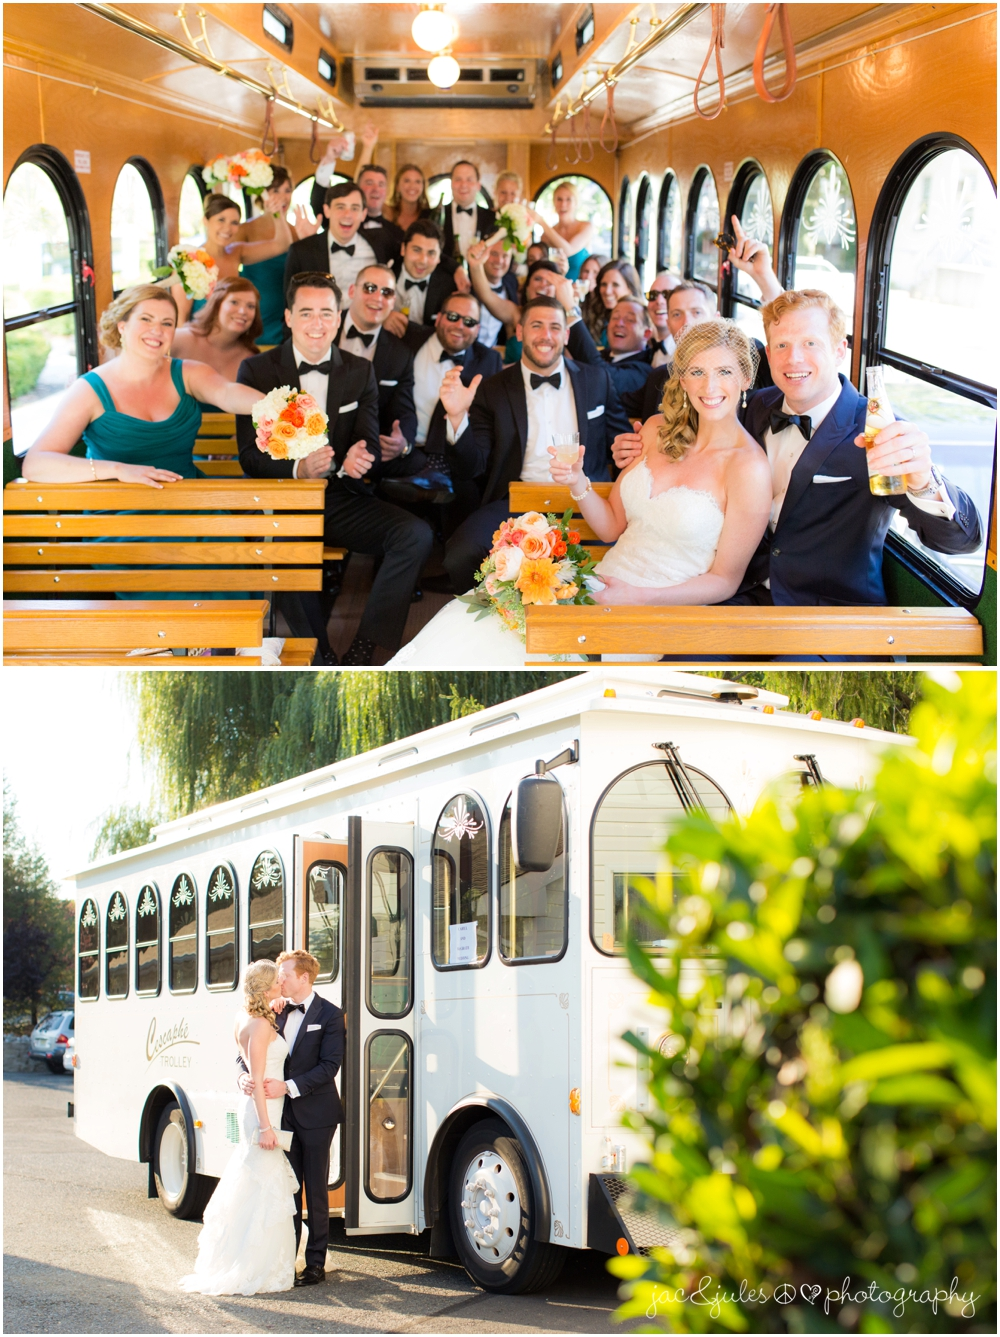 jacnjules photographs bridal party on a trolly in princeton nj